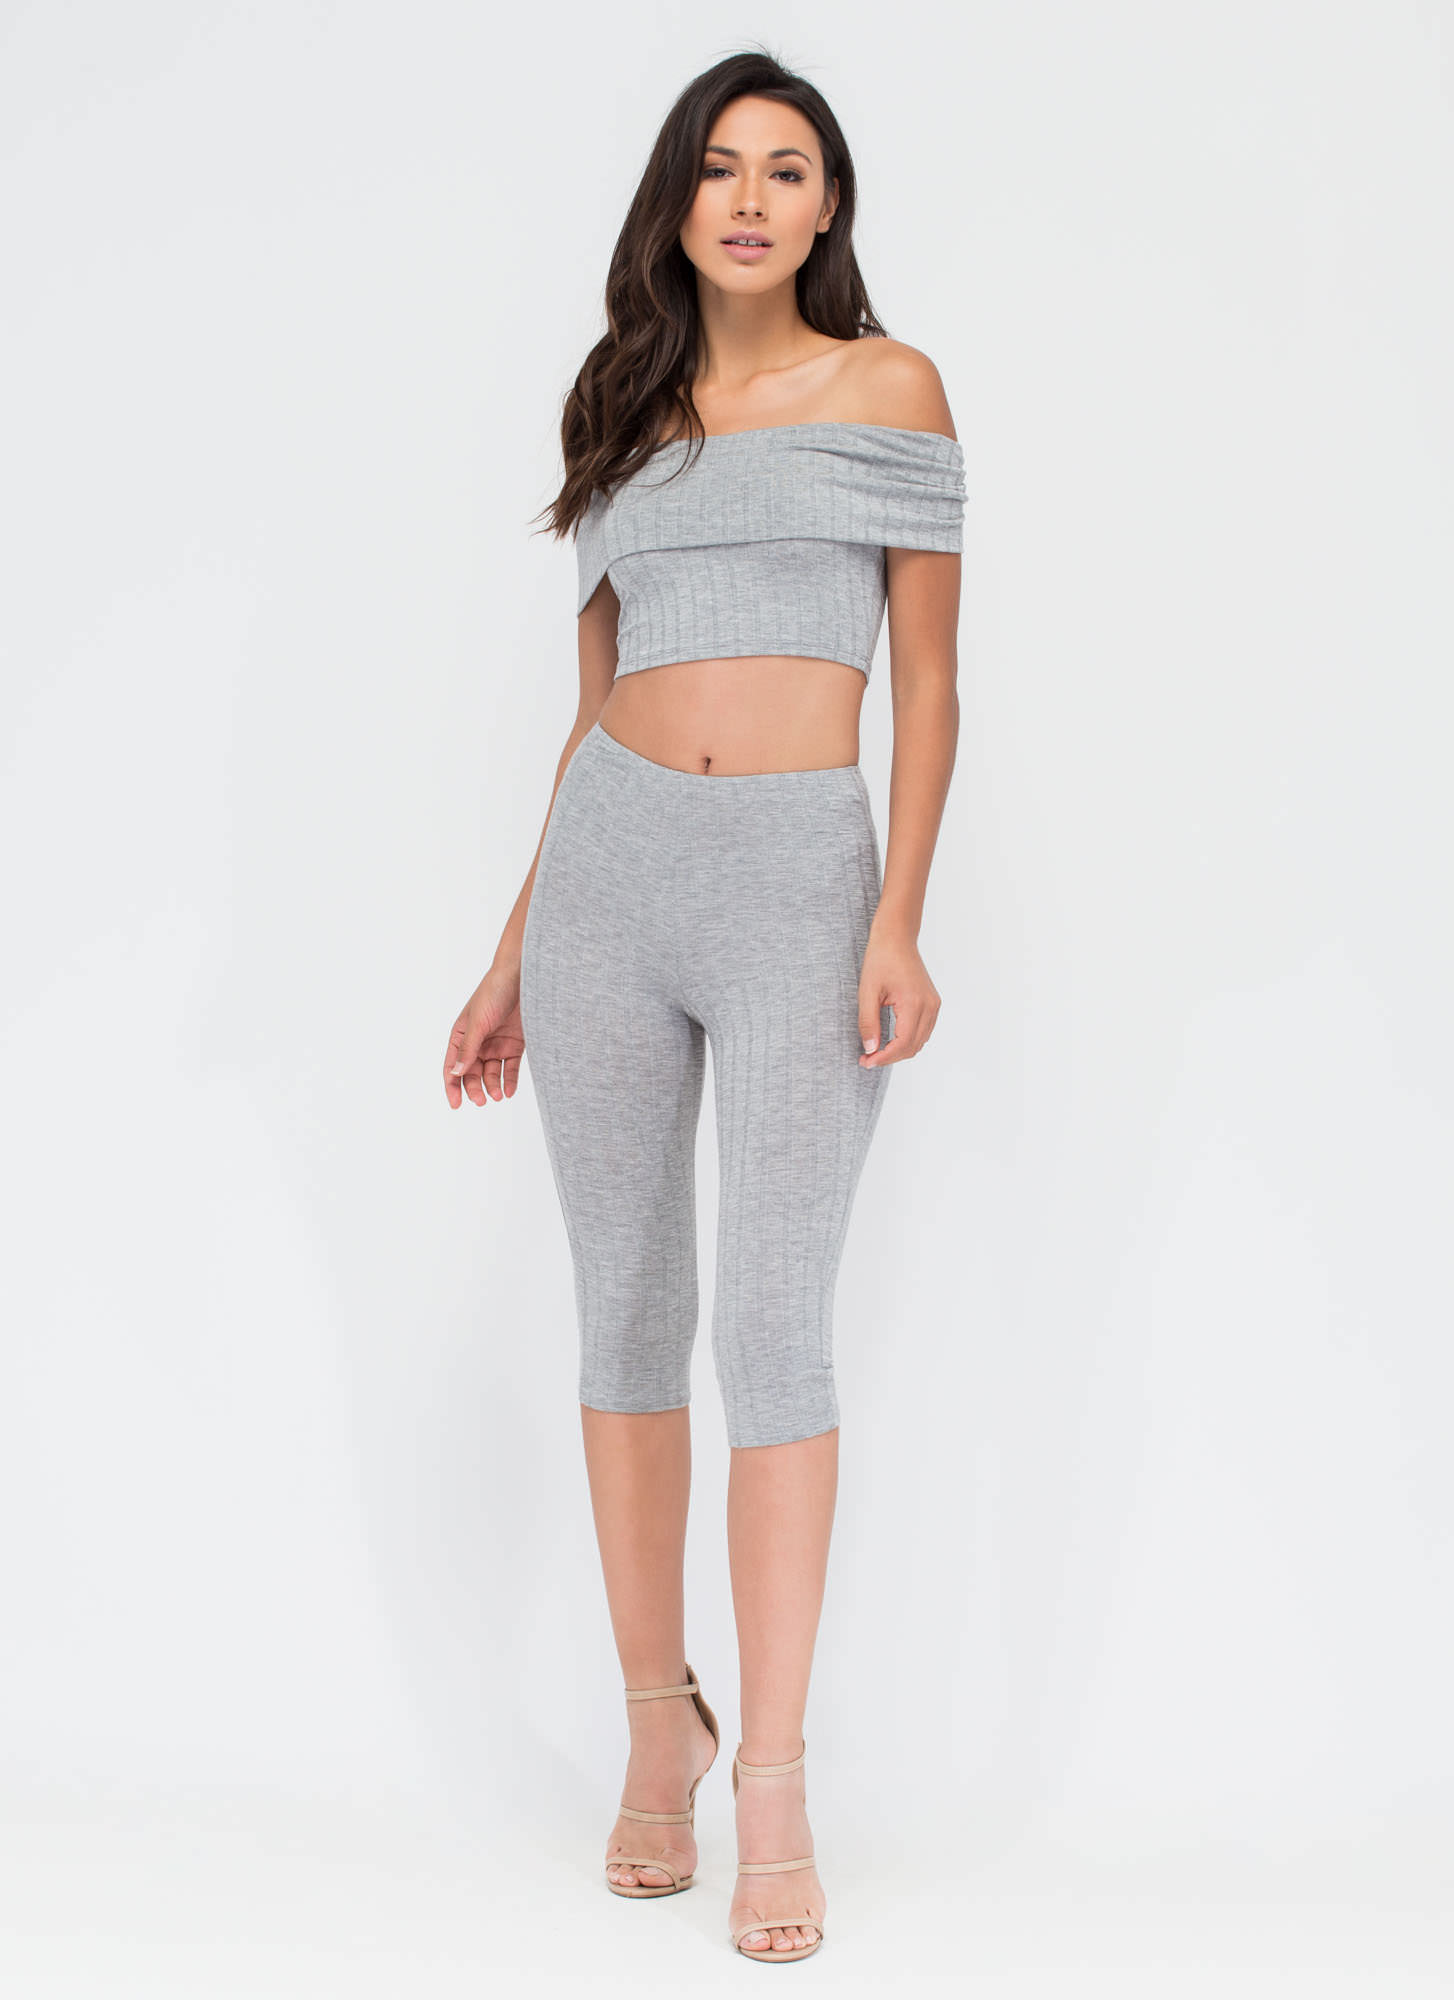 Show 'Em Up Ribbed Capri Leggings HGREY